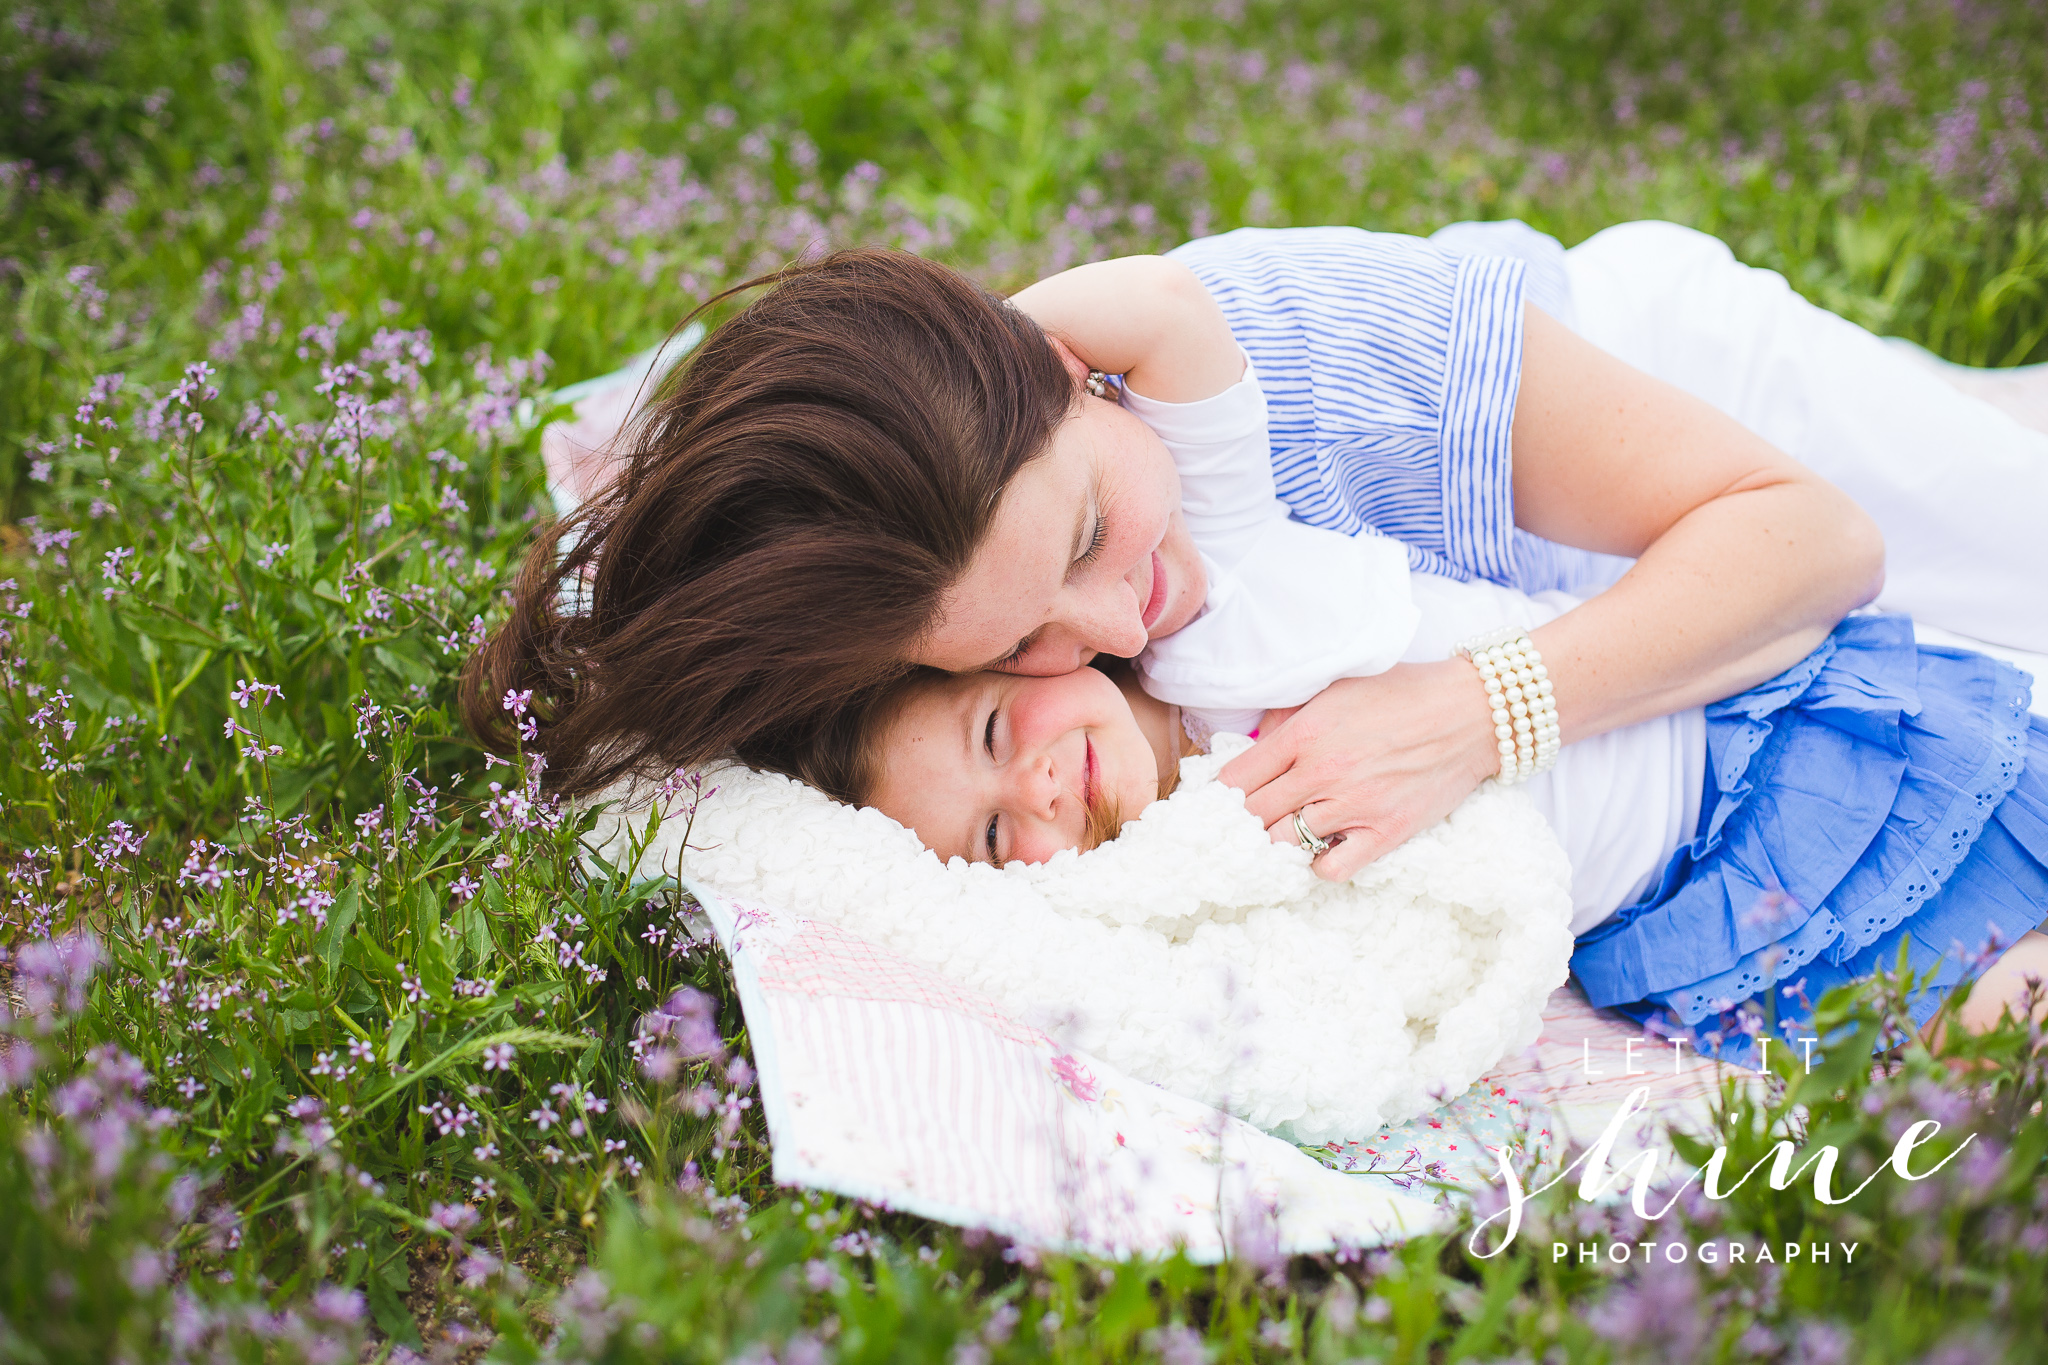 Mommy and Me Boise Lifestyle Photography-5155.jpg